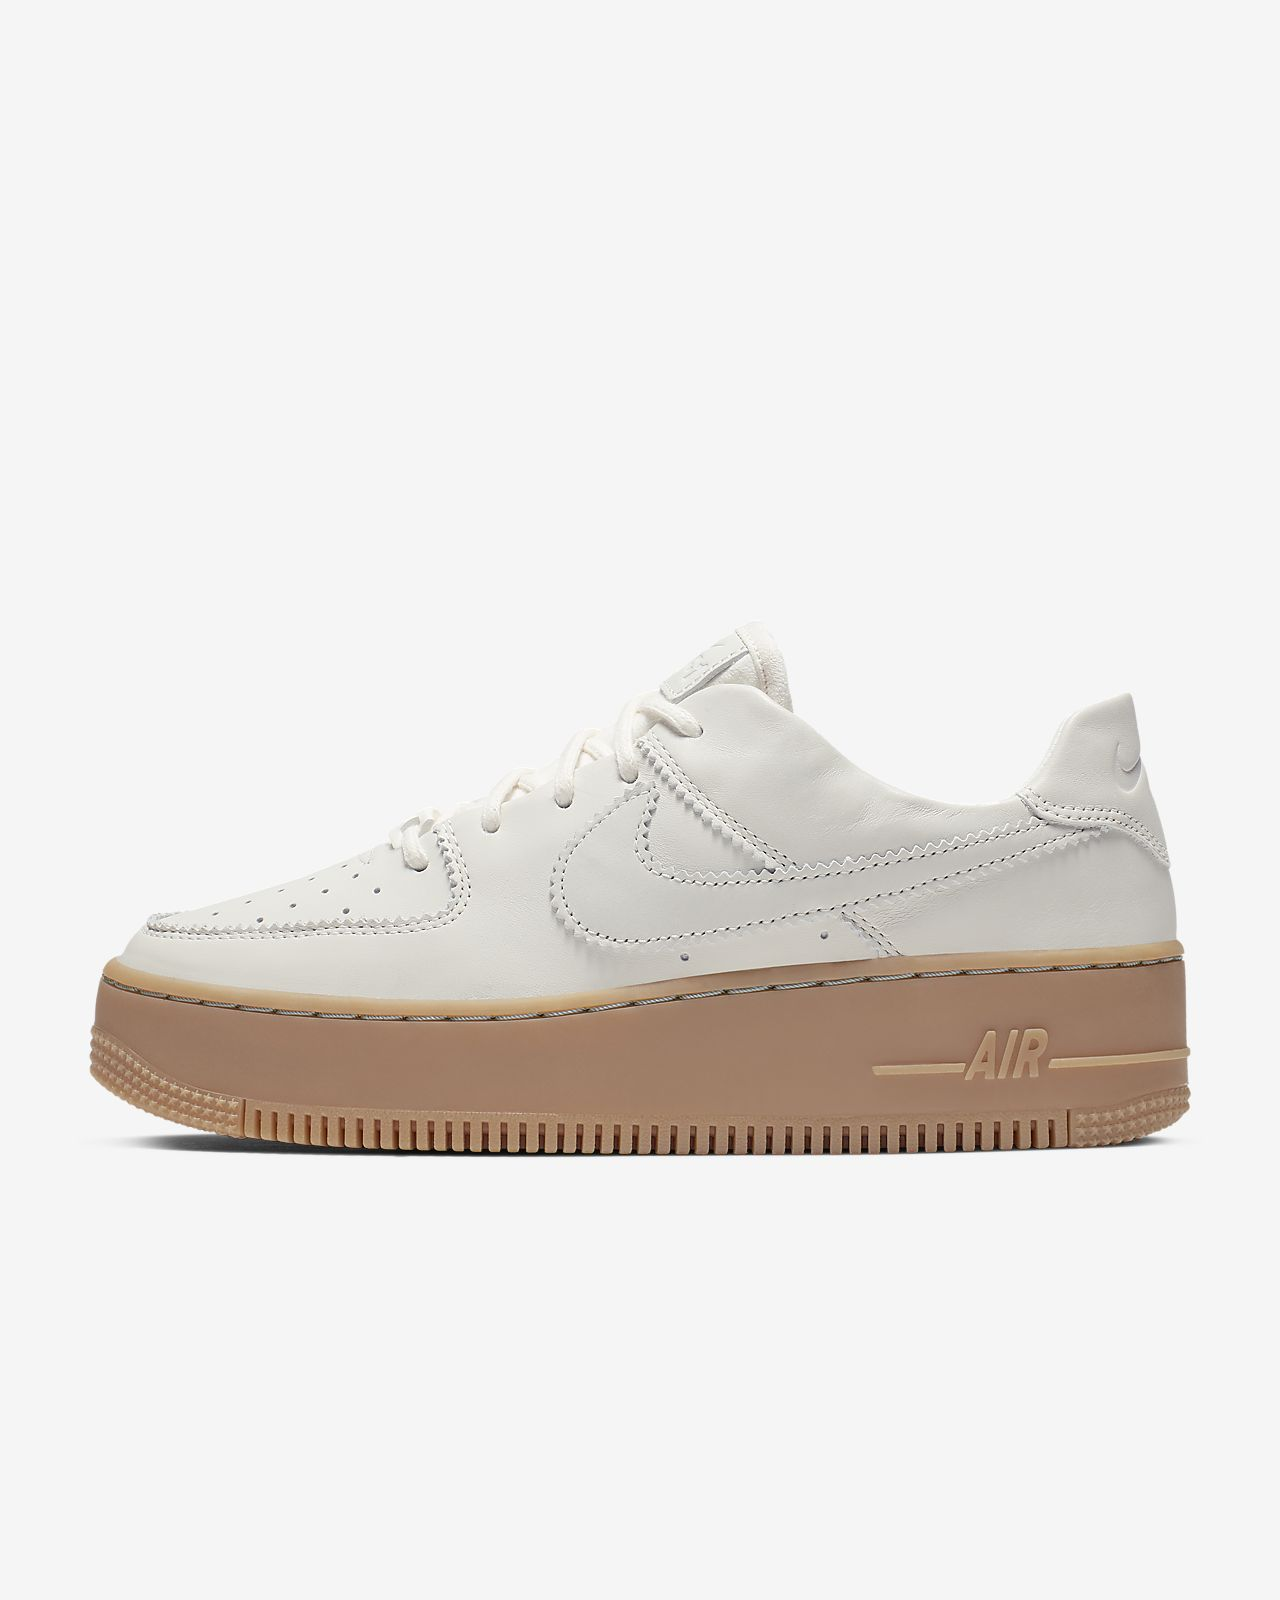 big sale 96a50 ec7d6 Nike Air Force 1 Sage Low LX. 120 €